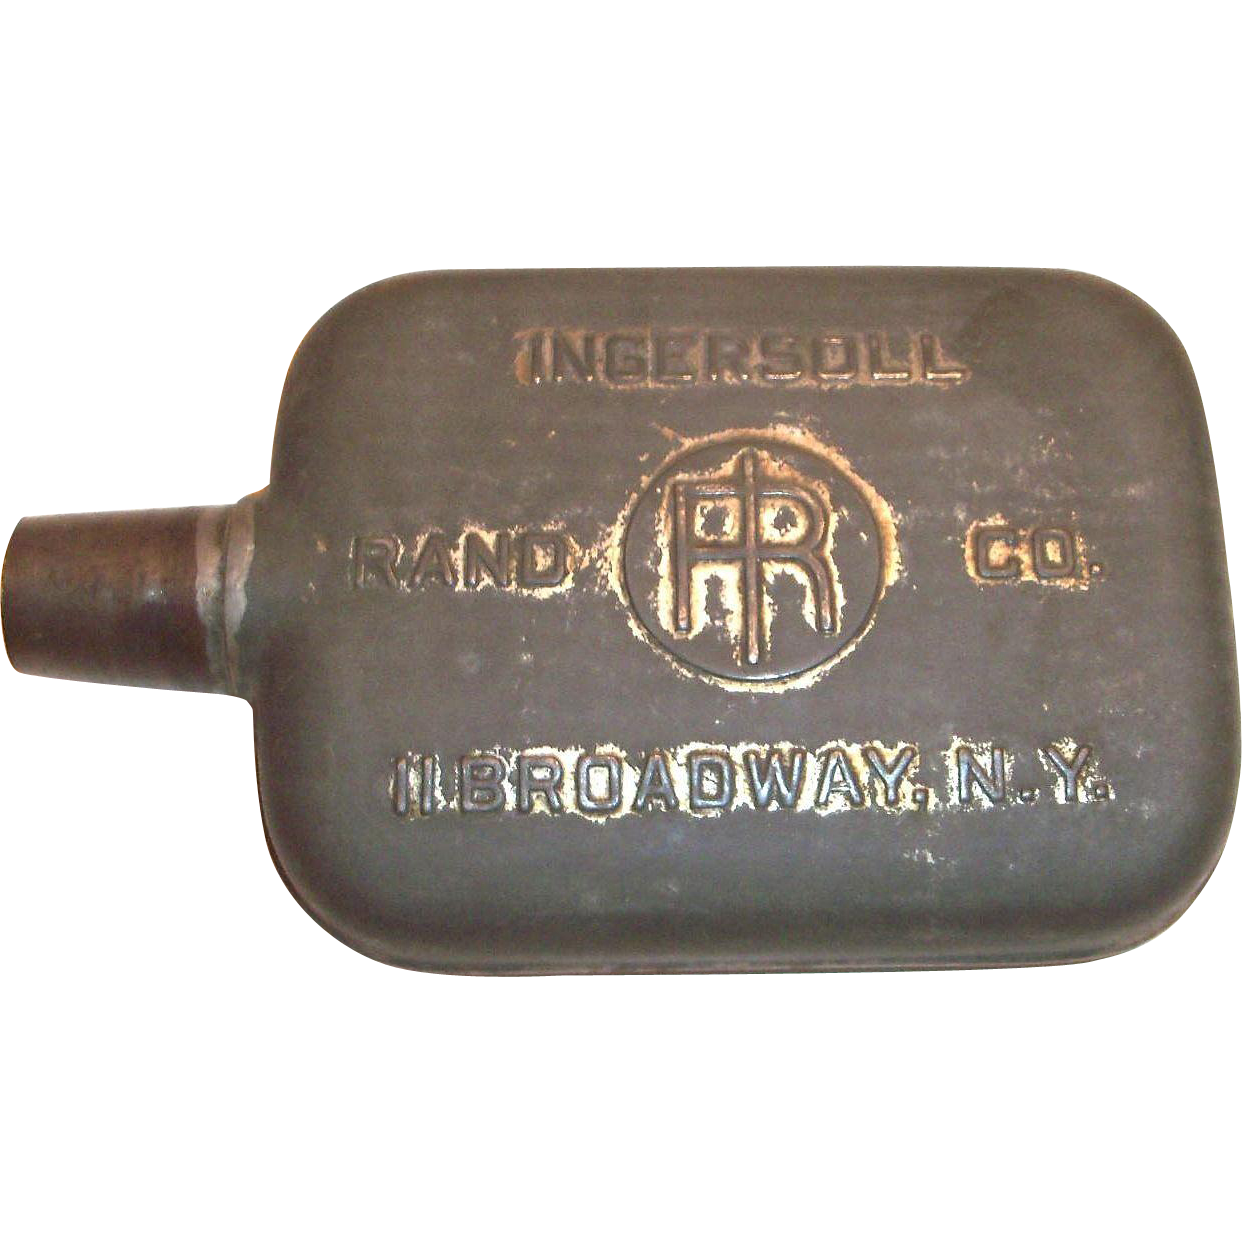 Vintage Ingersoll Rand Co. Advertising Metal or Tin Flask